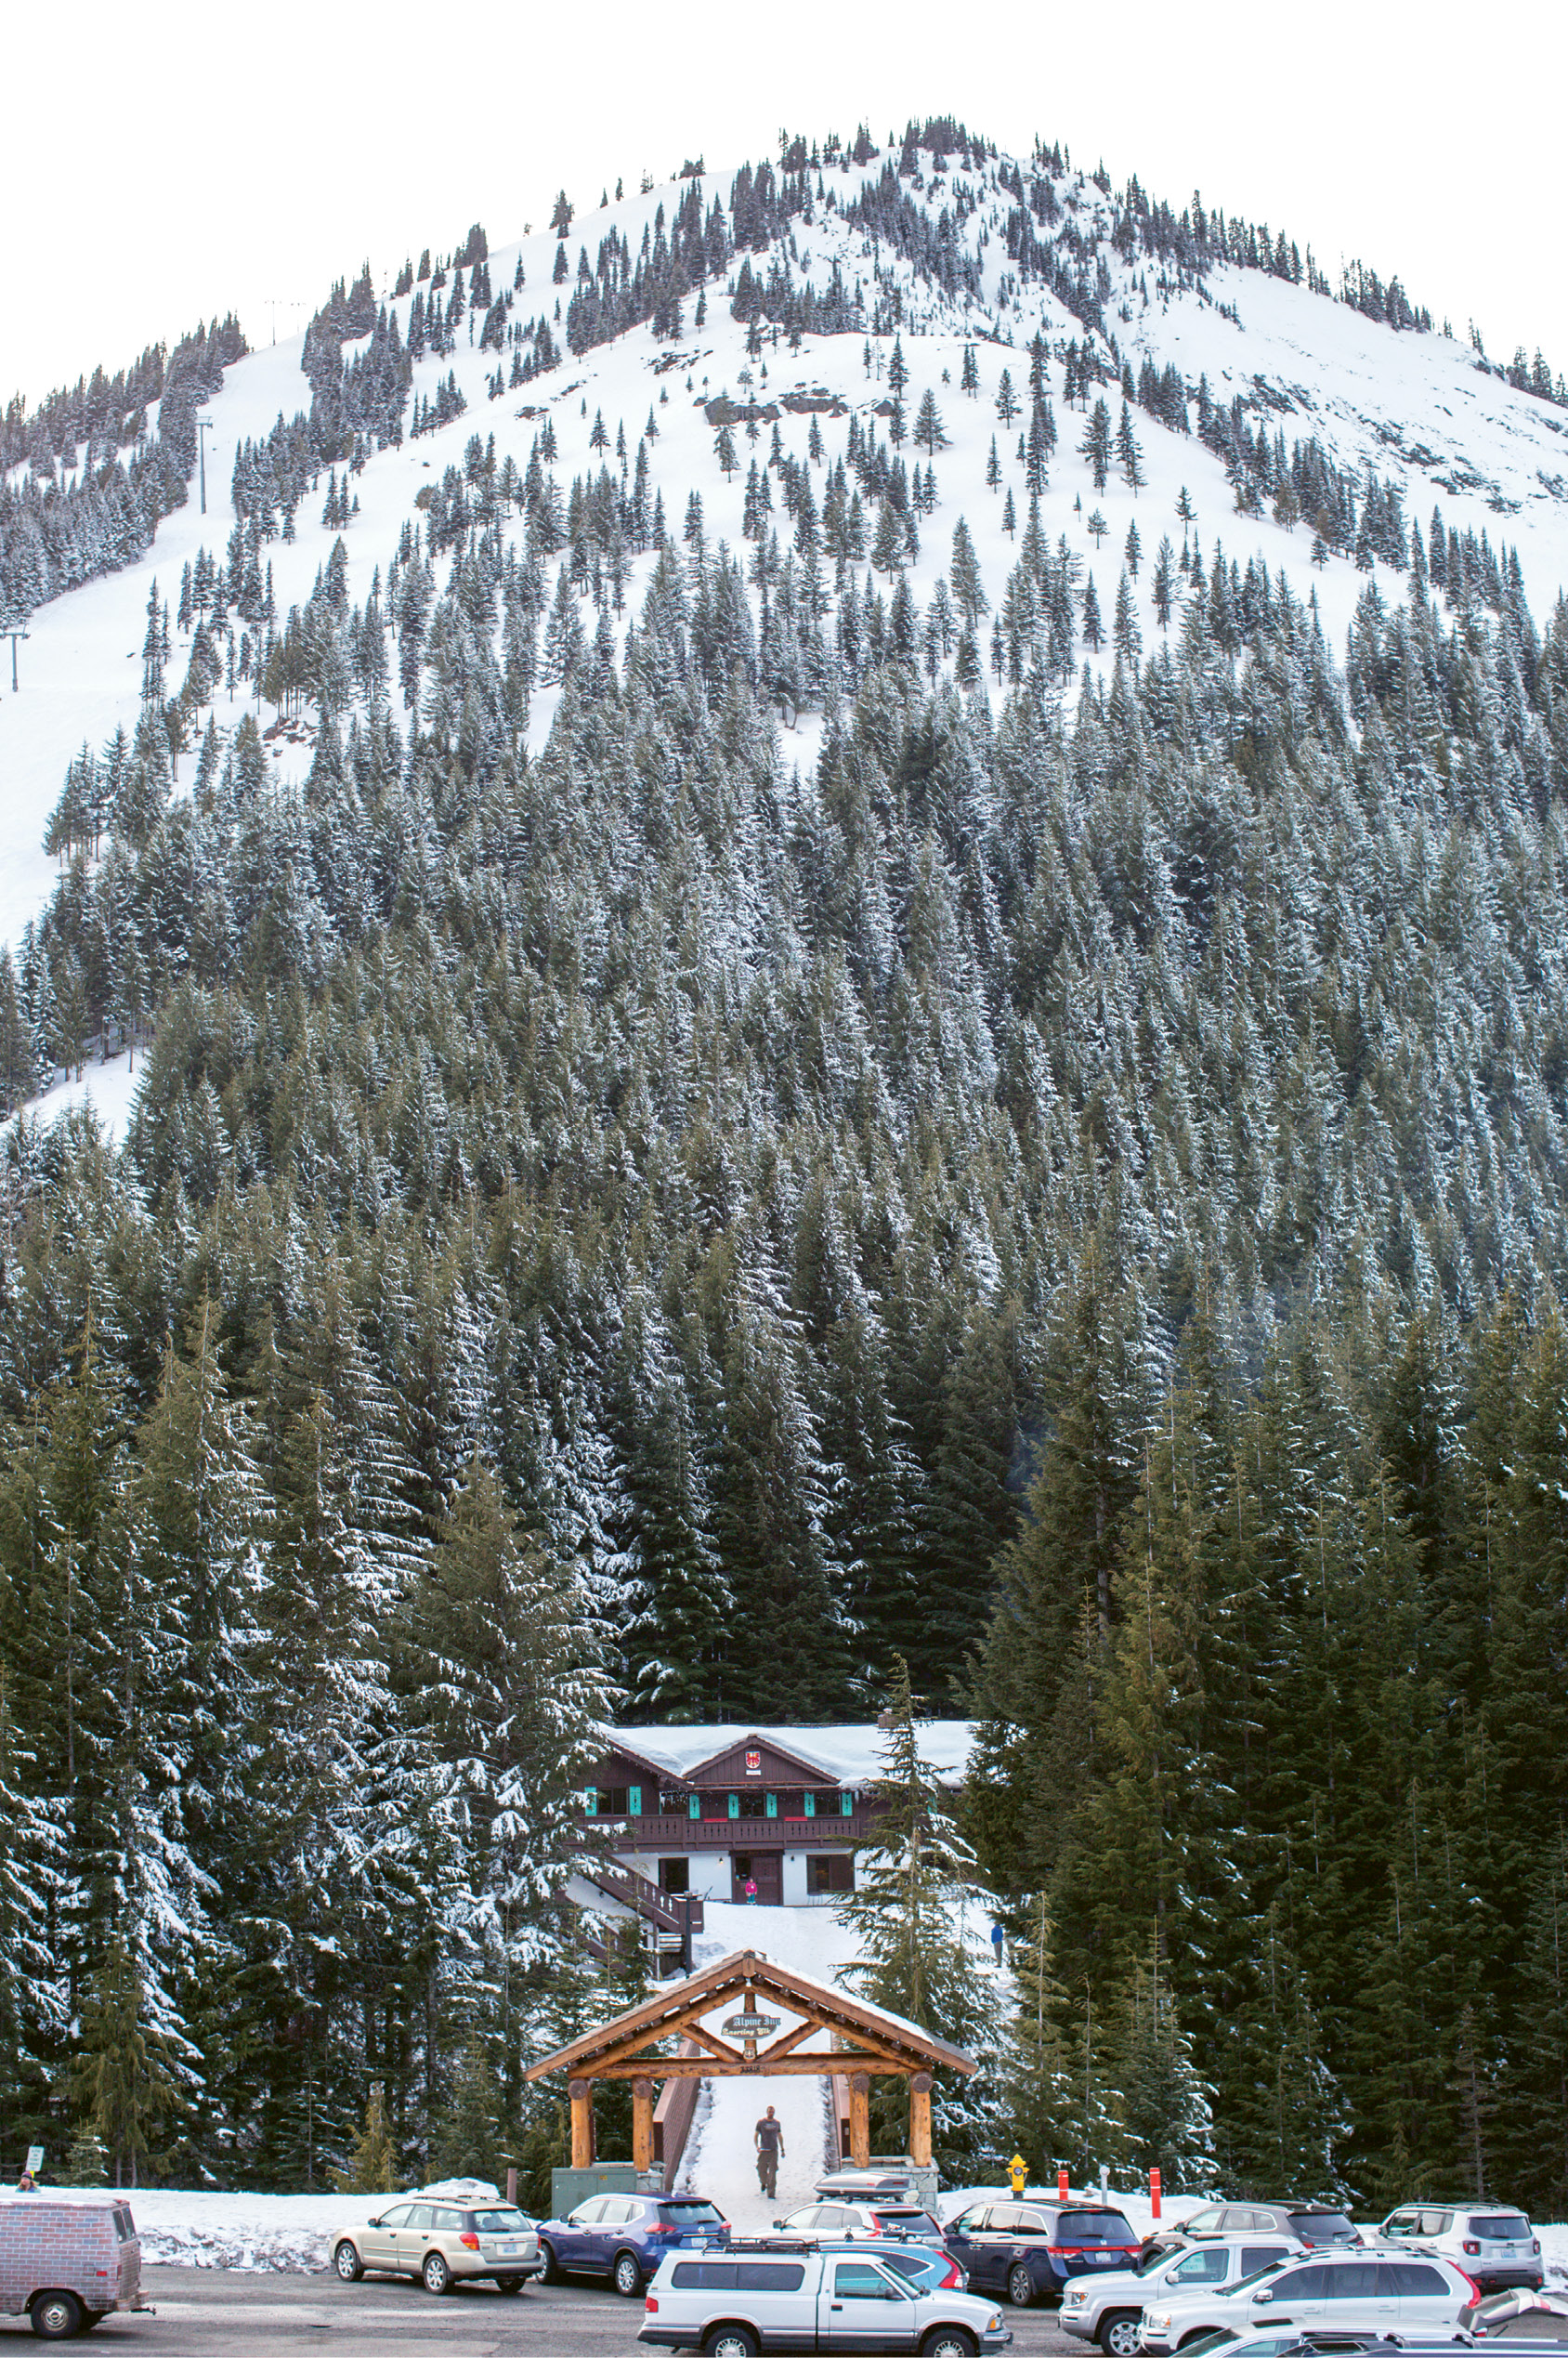 The Classic Experience: Crystal Mountain may be a Washington State locals' resort, but its slopes could make any East Coast mountain blush. The base village is pure Bavarian kitsch, with modernist nods like thoughtful vegetarian fare.